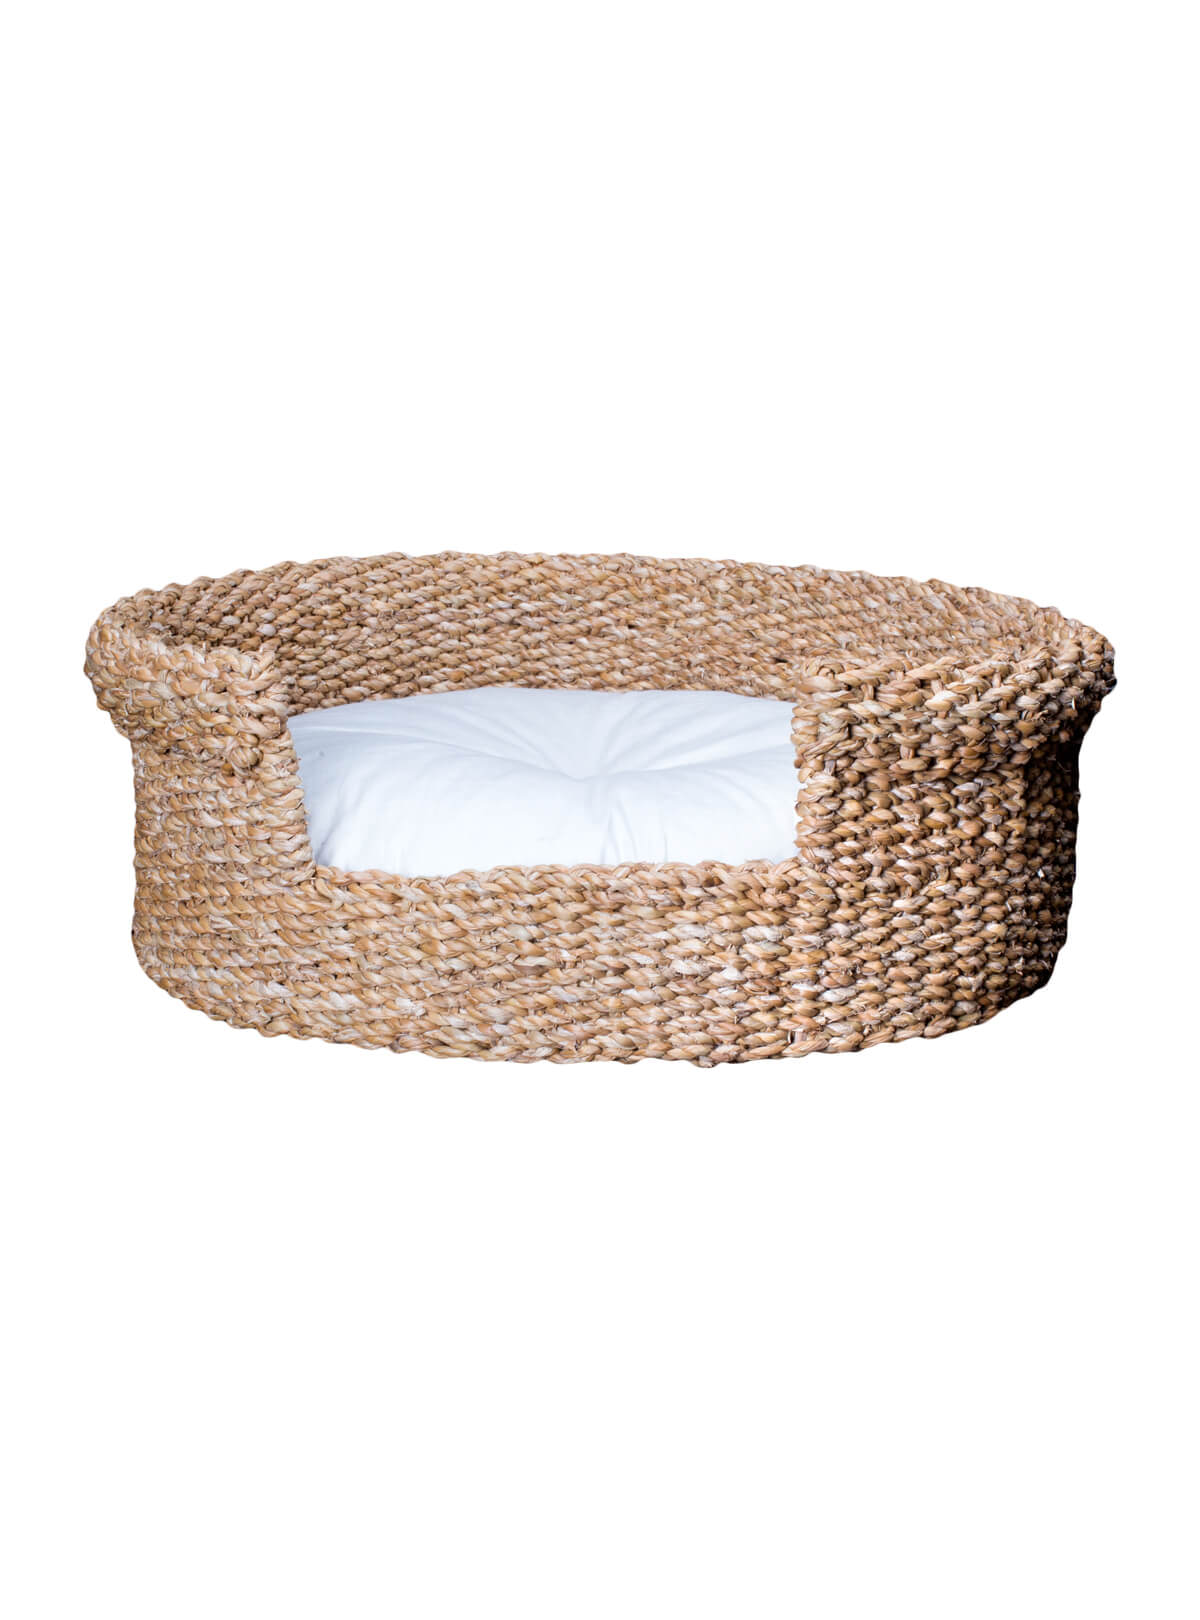 Sea Grass Cat Basket With Pillow